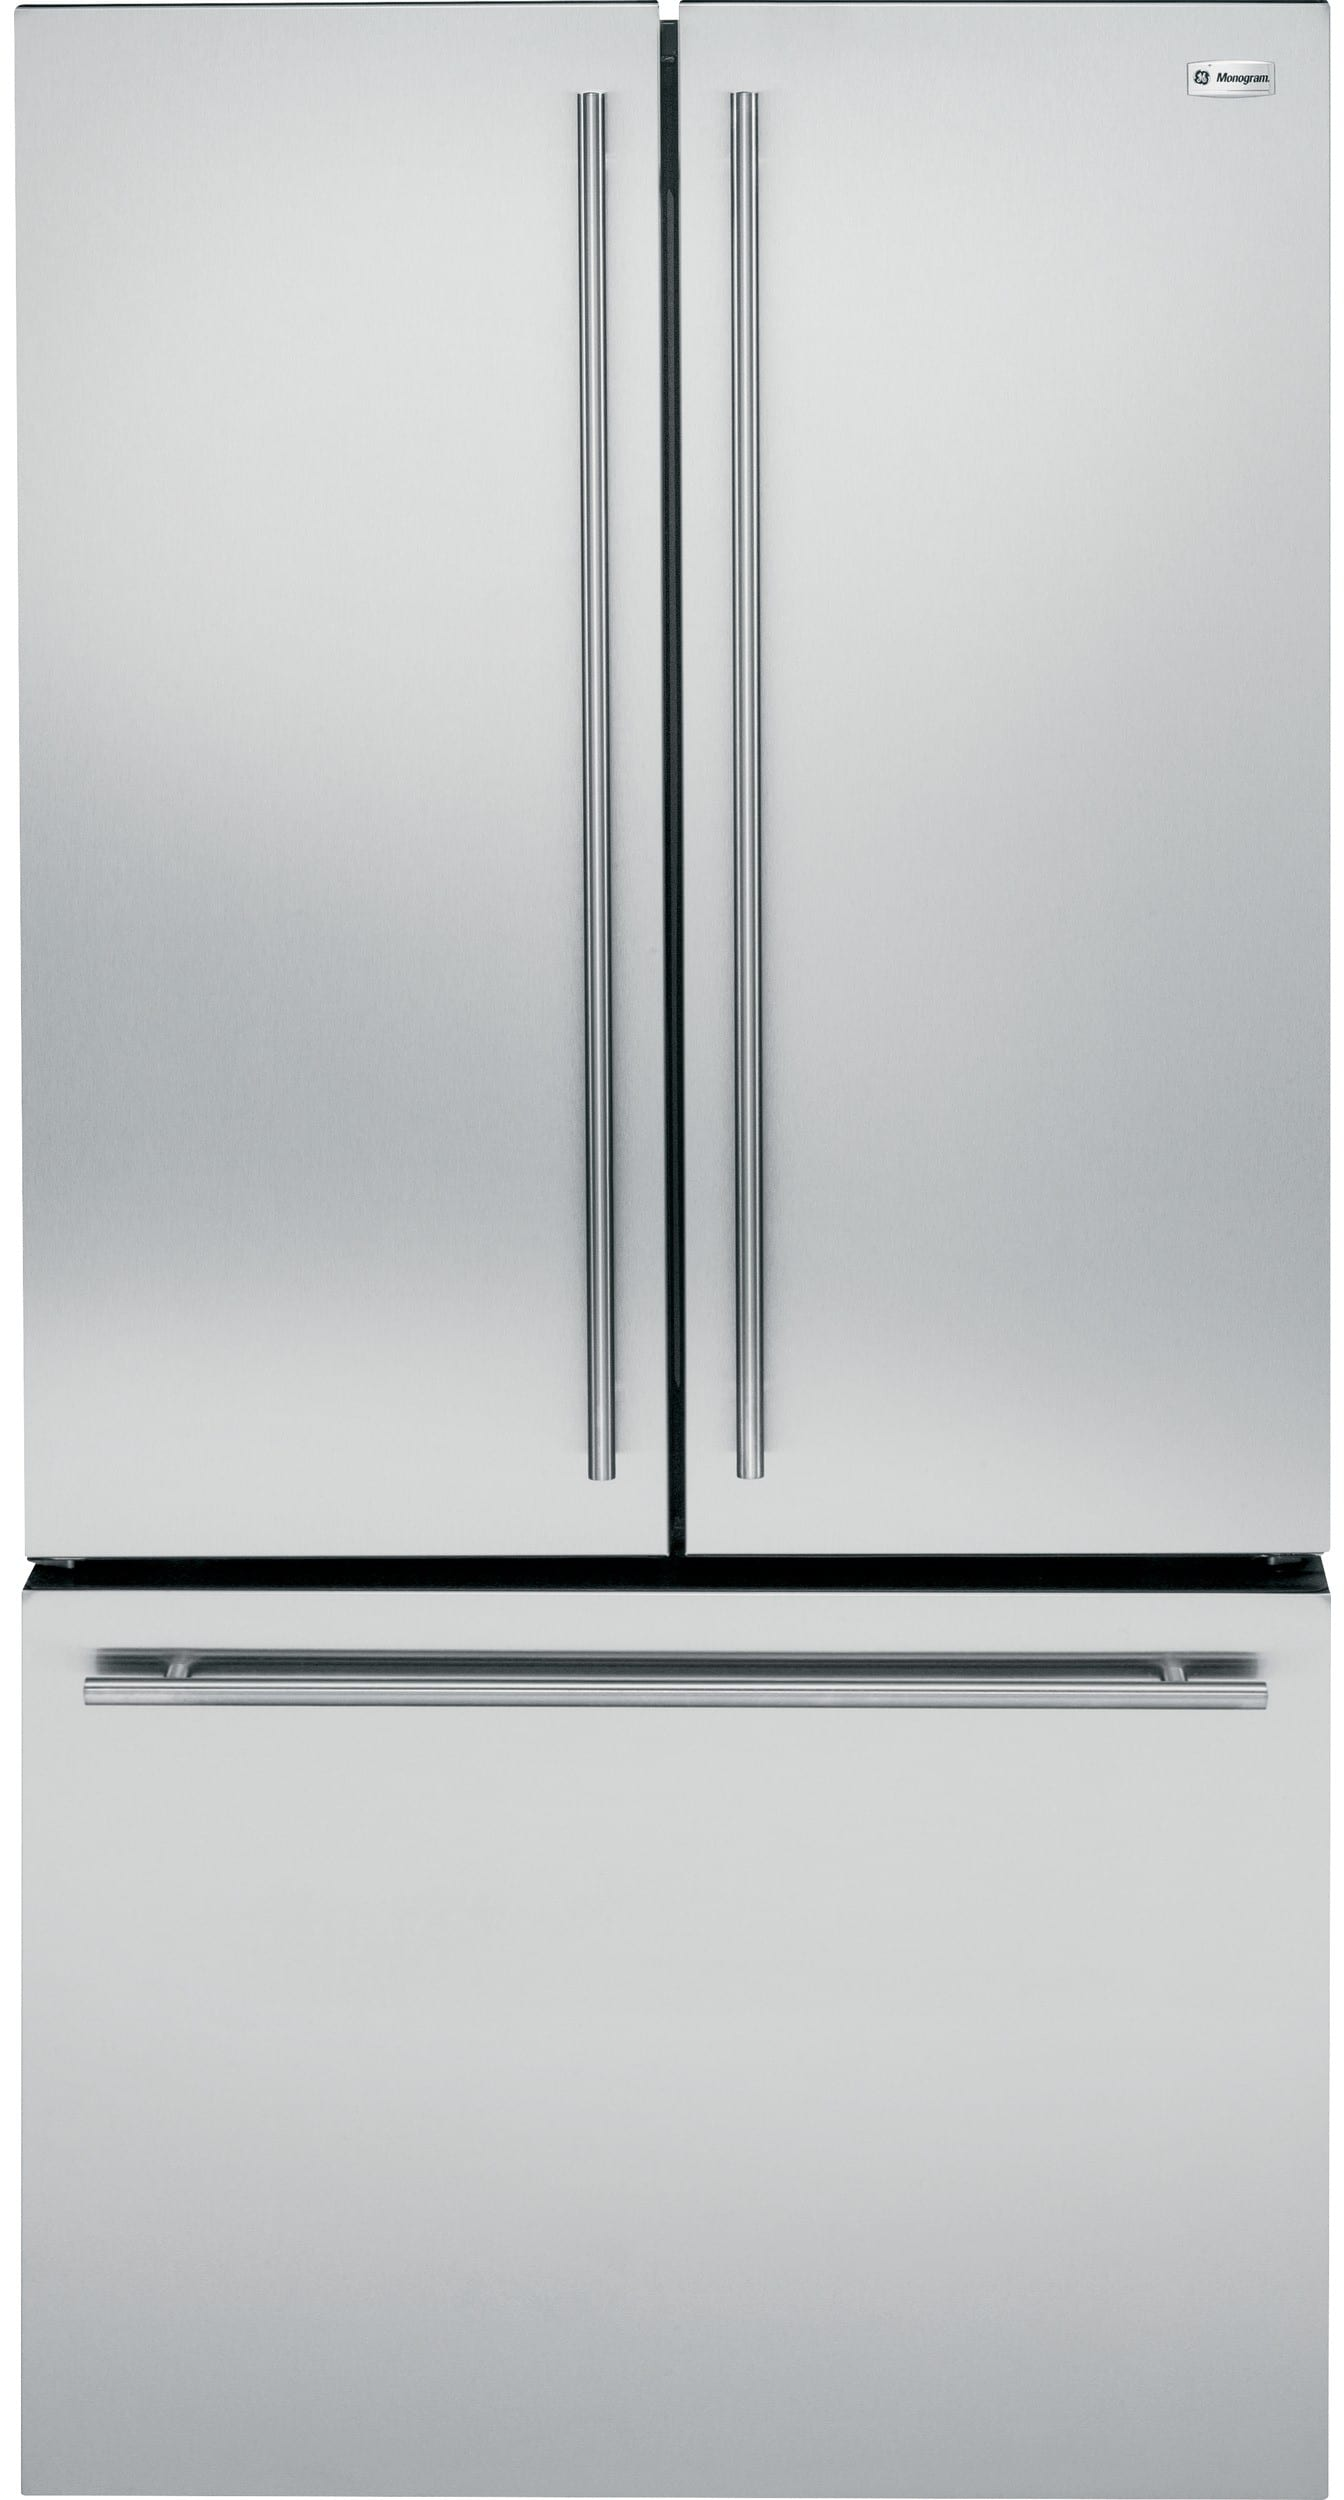 Monogram Zwe23eshss 36 Inch Counter Depth French Door Refrigerator